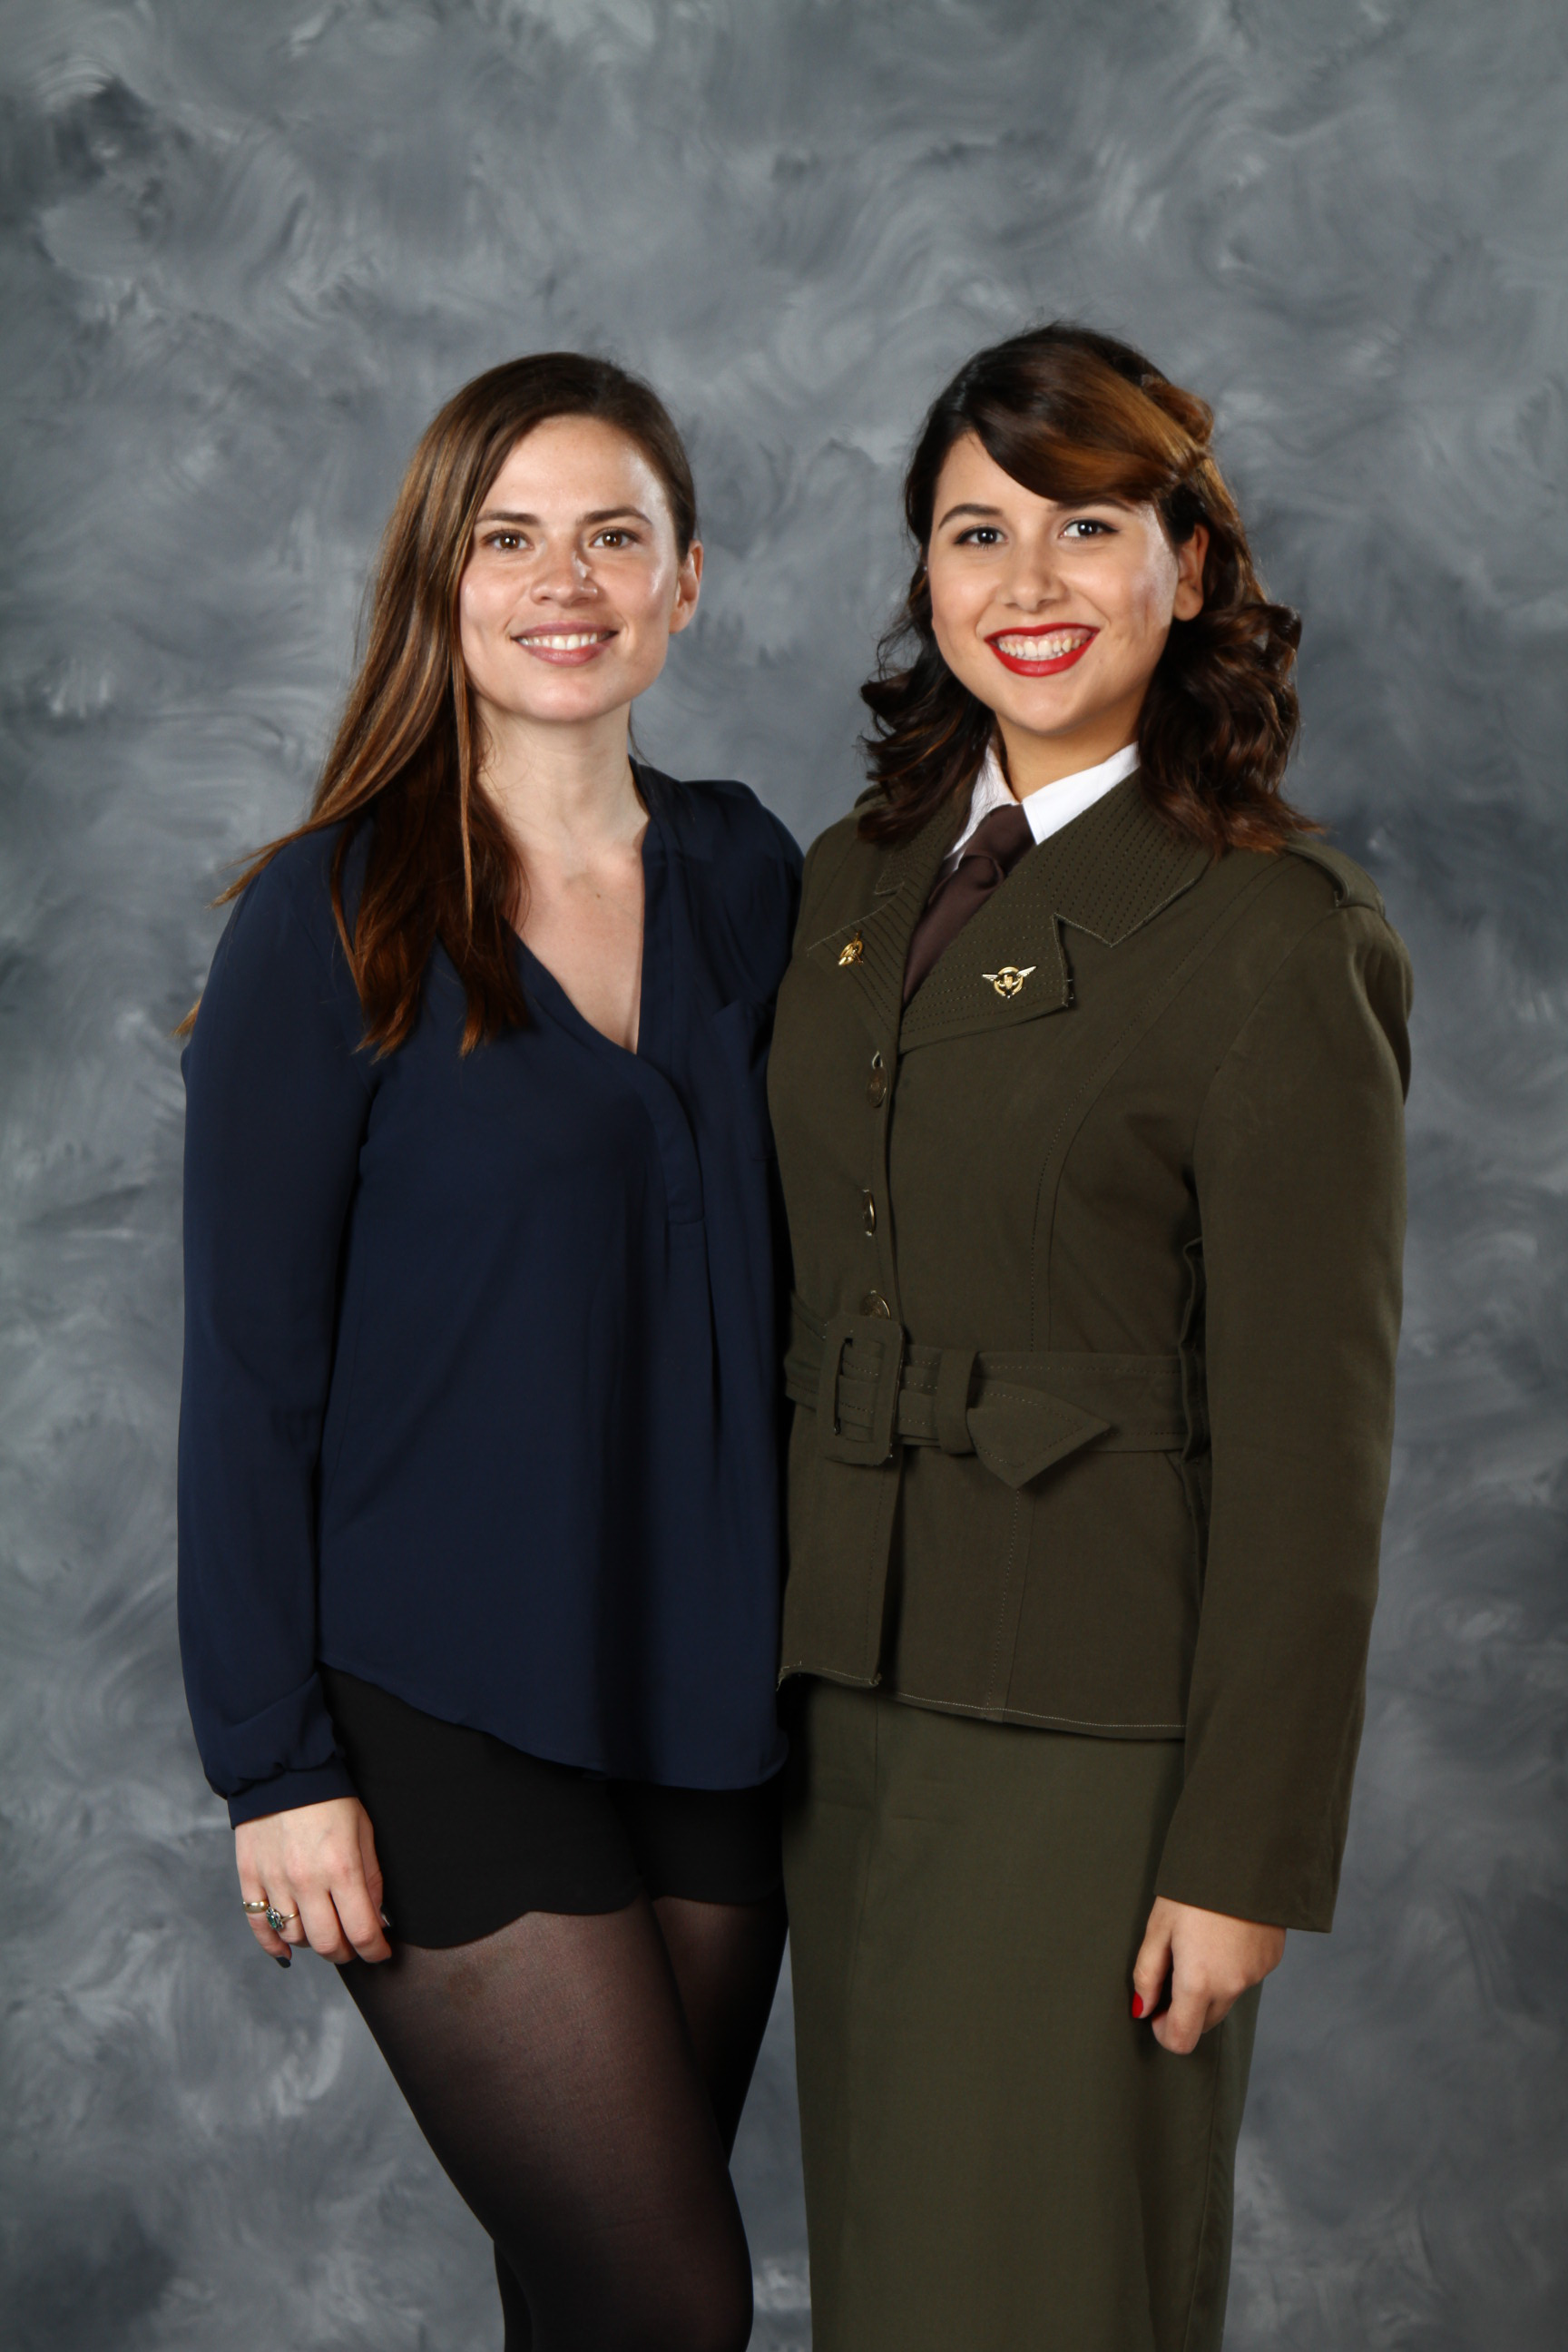 """A 40's inspired cosplay makeup for Agent Peggy Carter from the Marvel film """"Captain America: The First Avenger"""" alongside actress Hayley Atwell."""